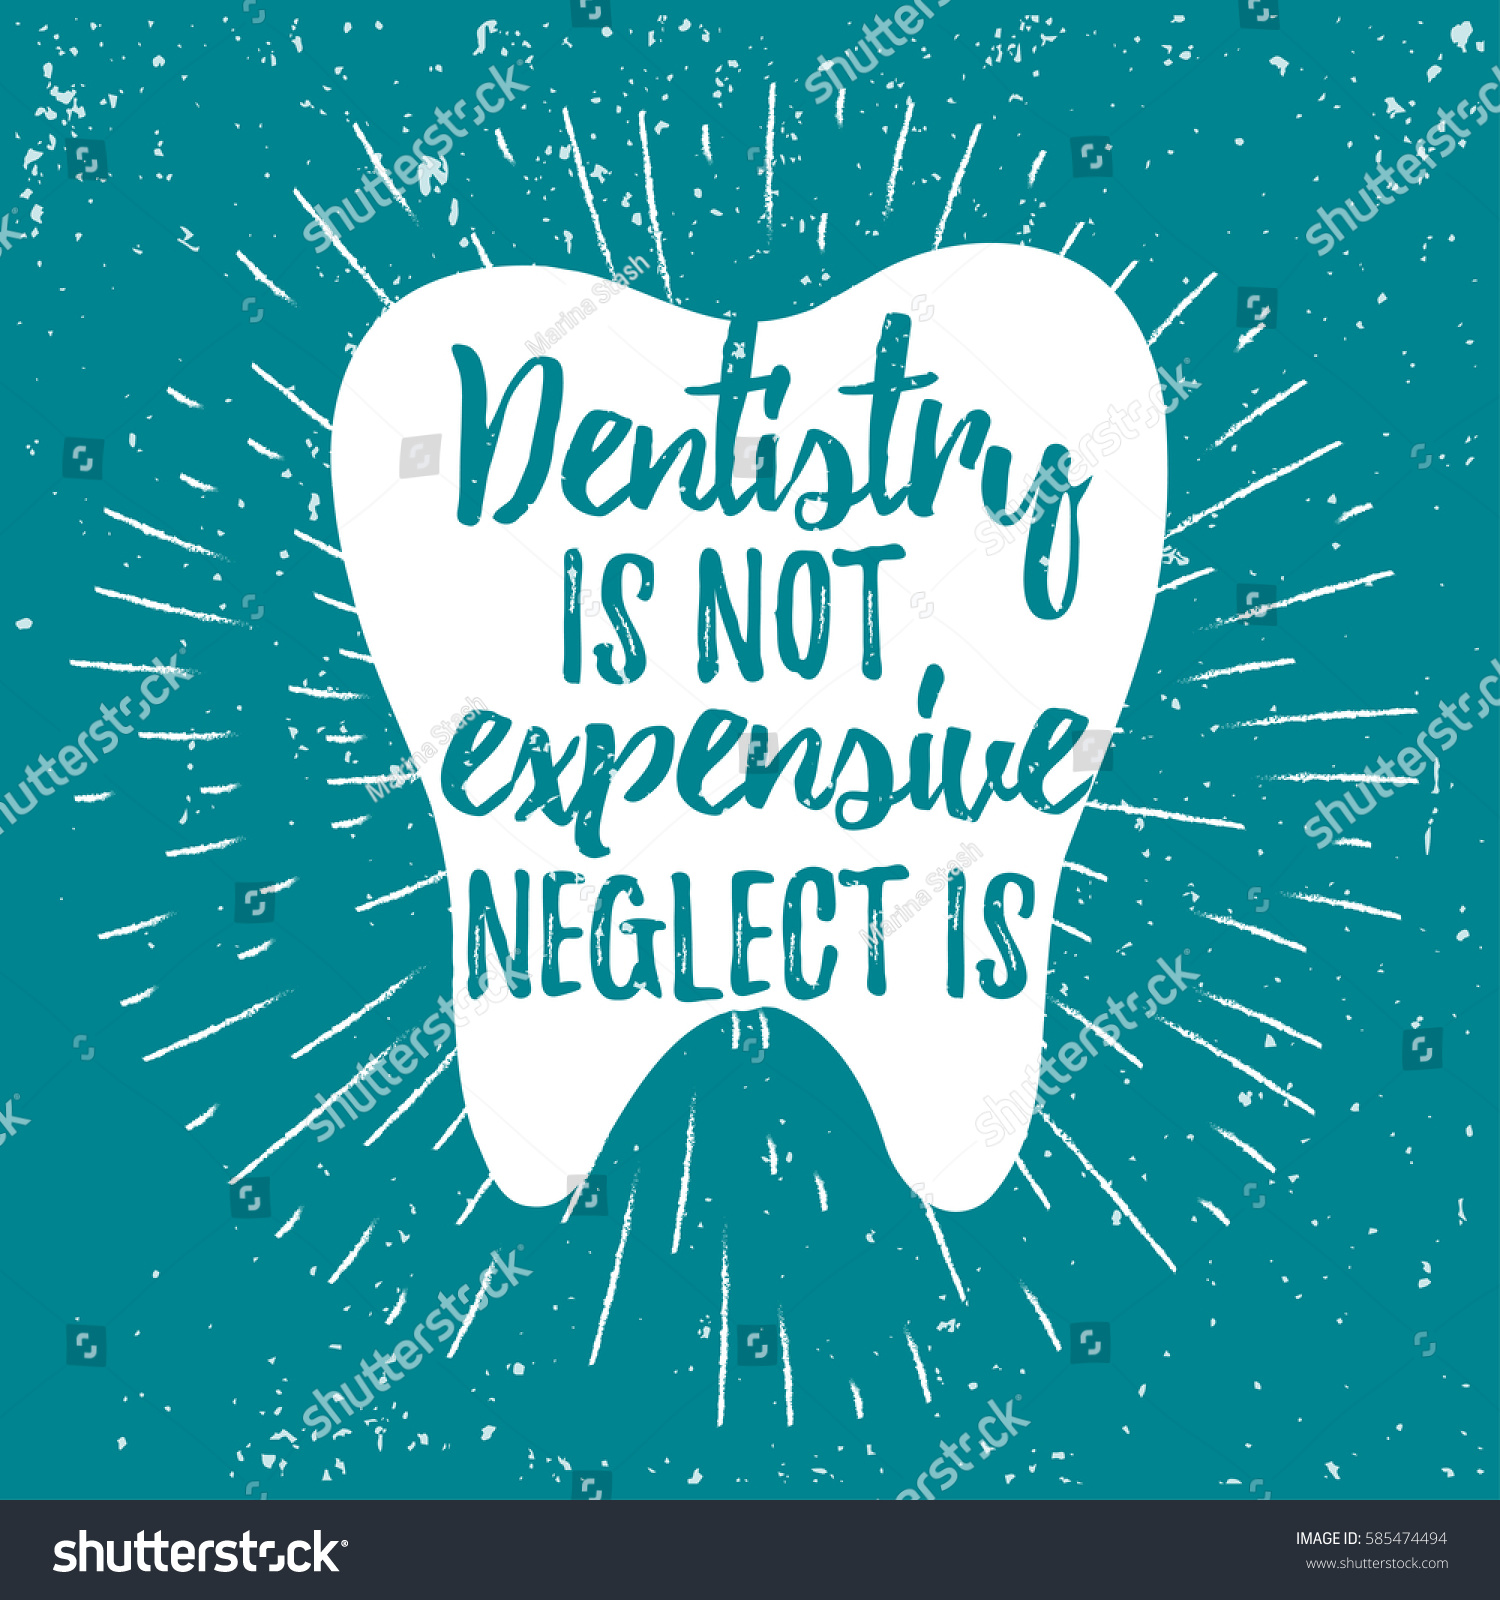 stock-vector-dental-care-motivational-quote-poster-dentist-day-greeting-card-template-typography-lettering-585474494.jpg